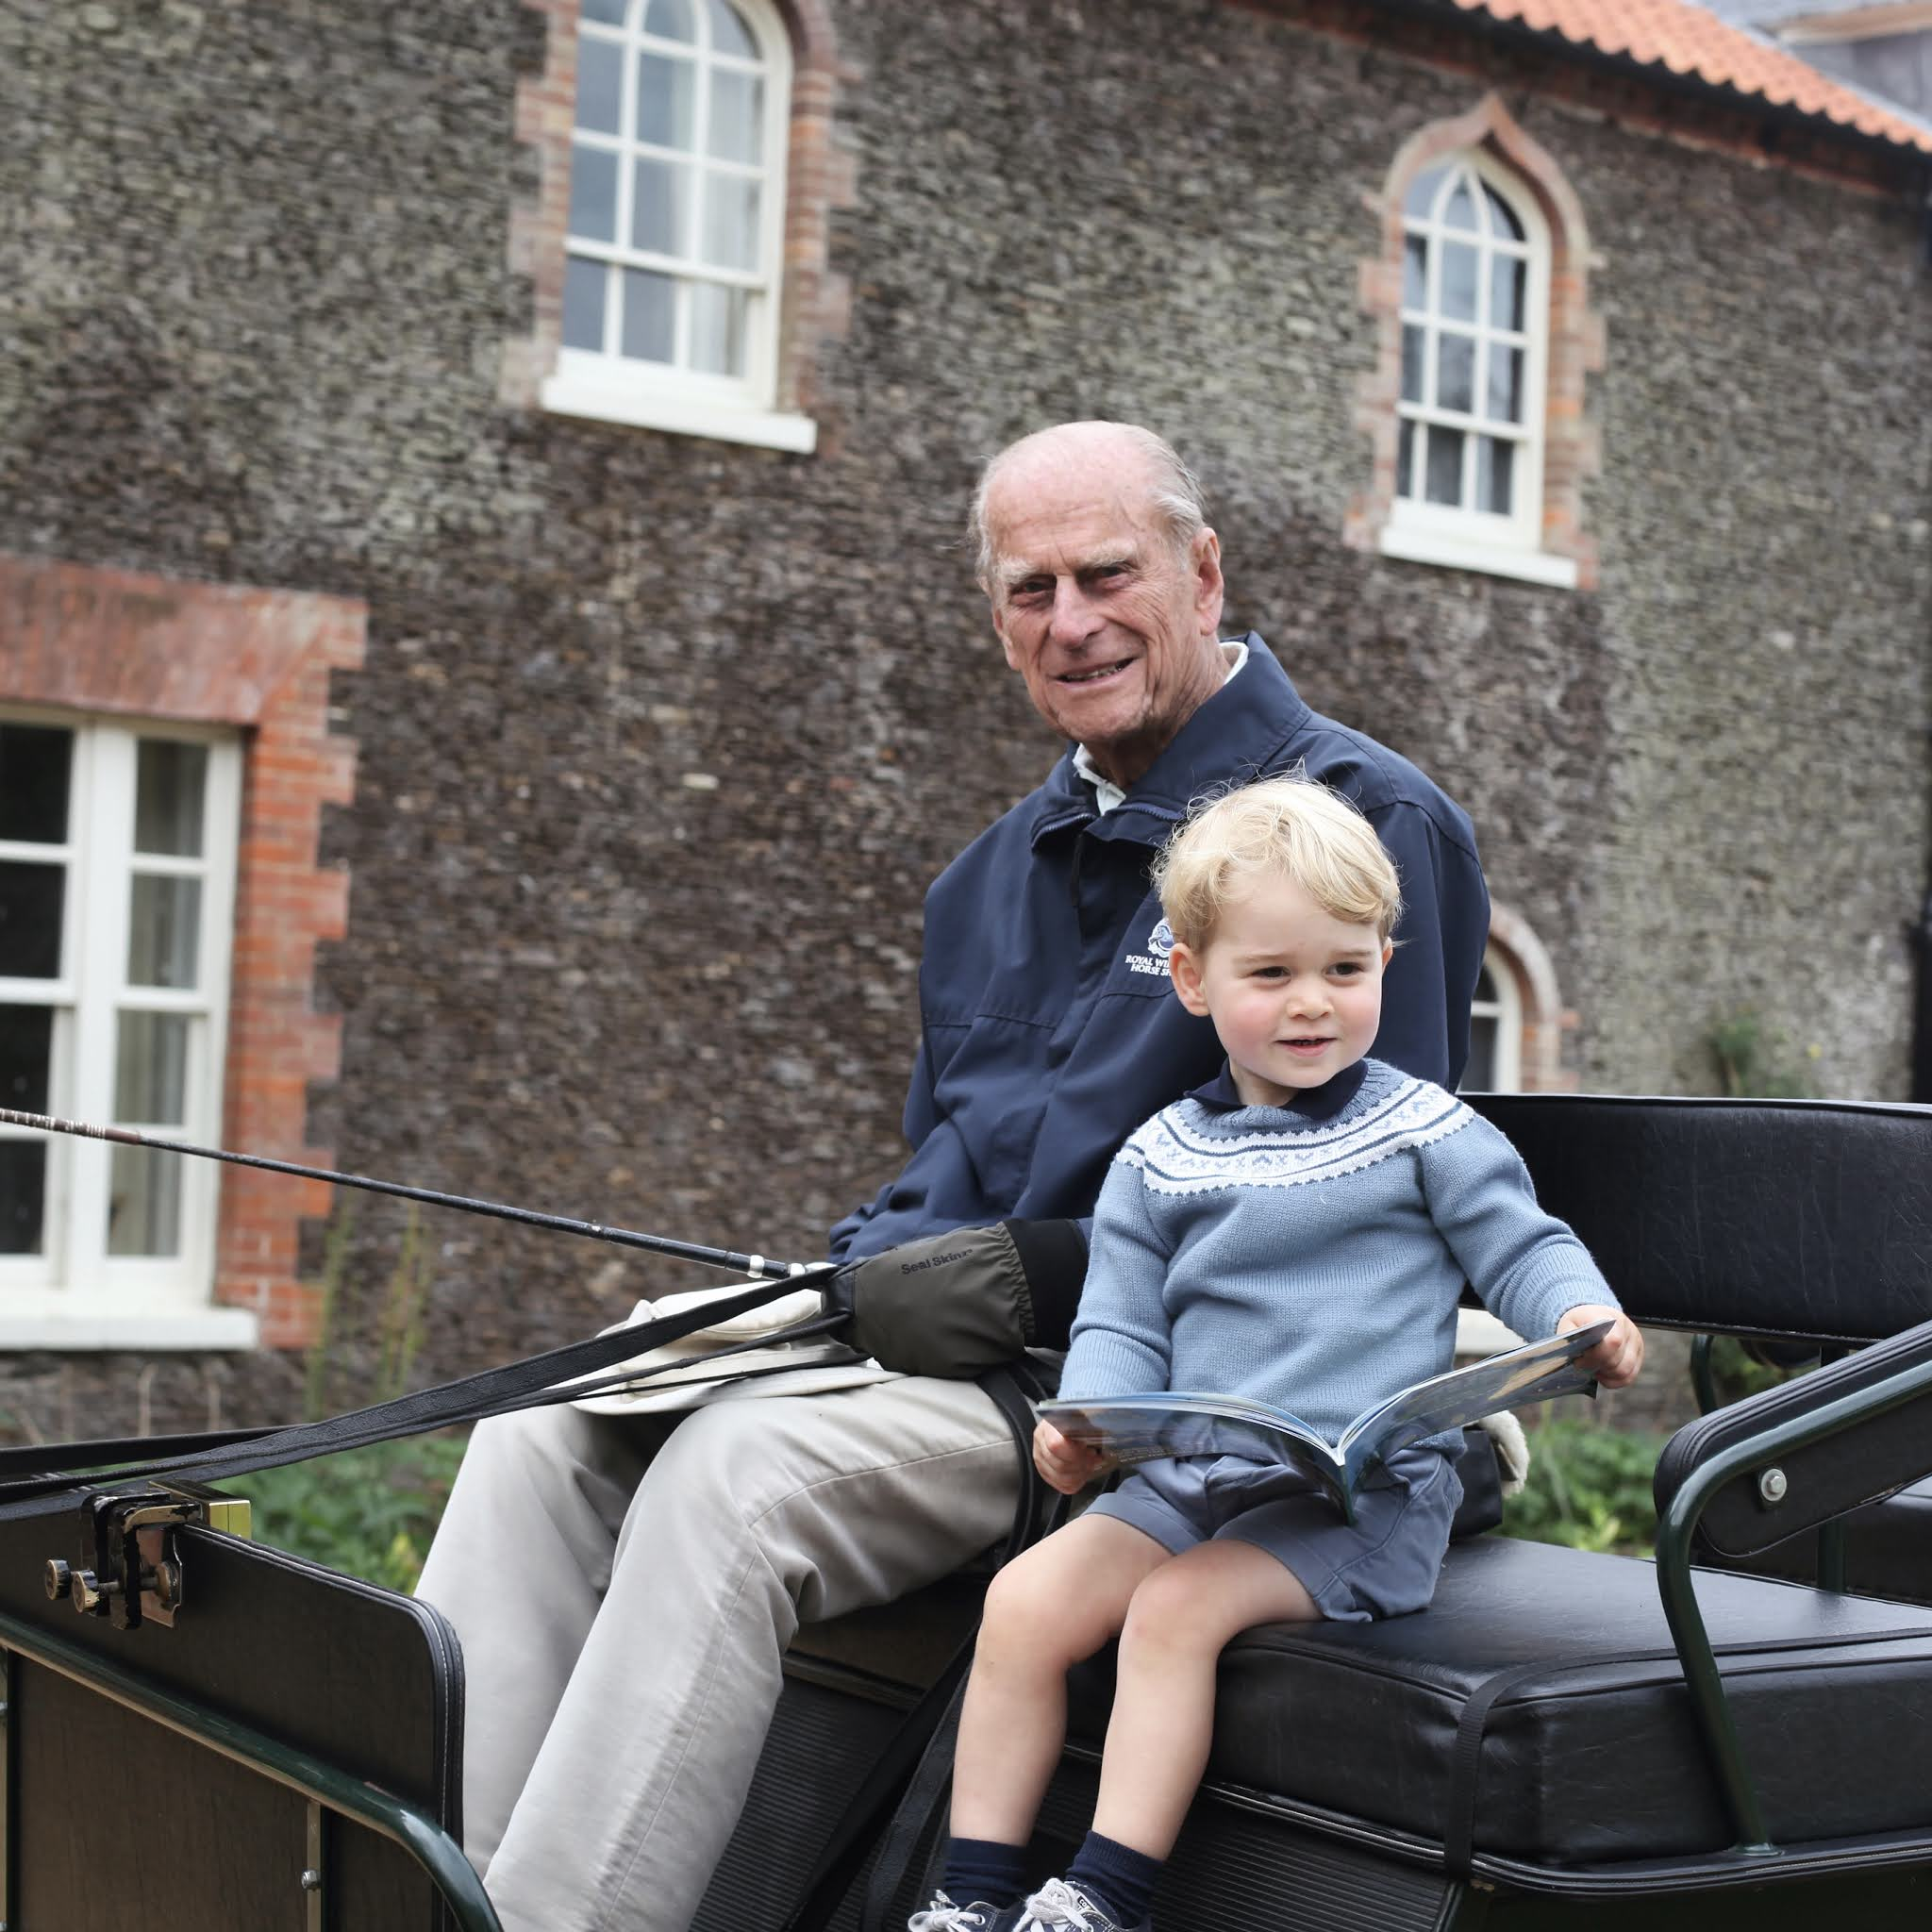 The Duke and Duchess of Cambridge released a picture of Prince George with Prince Philip